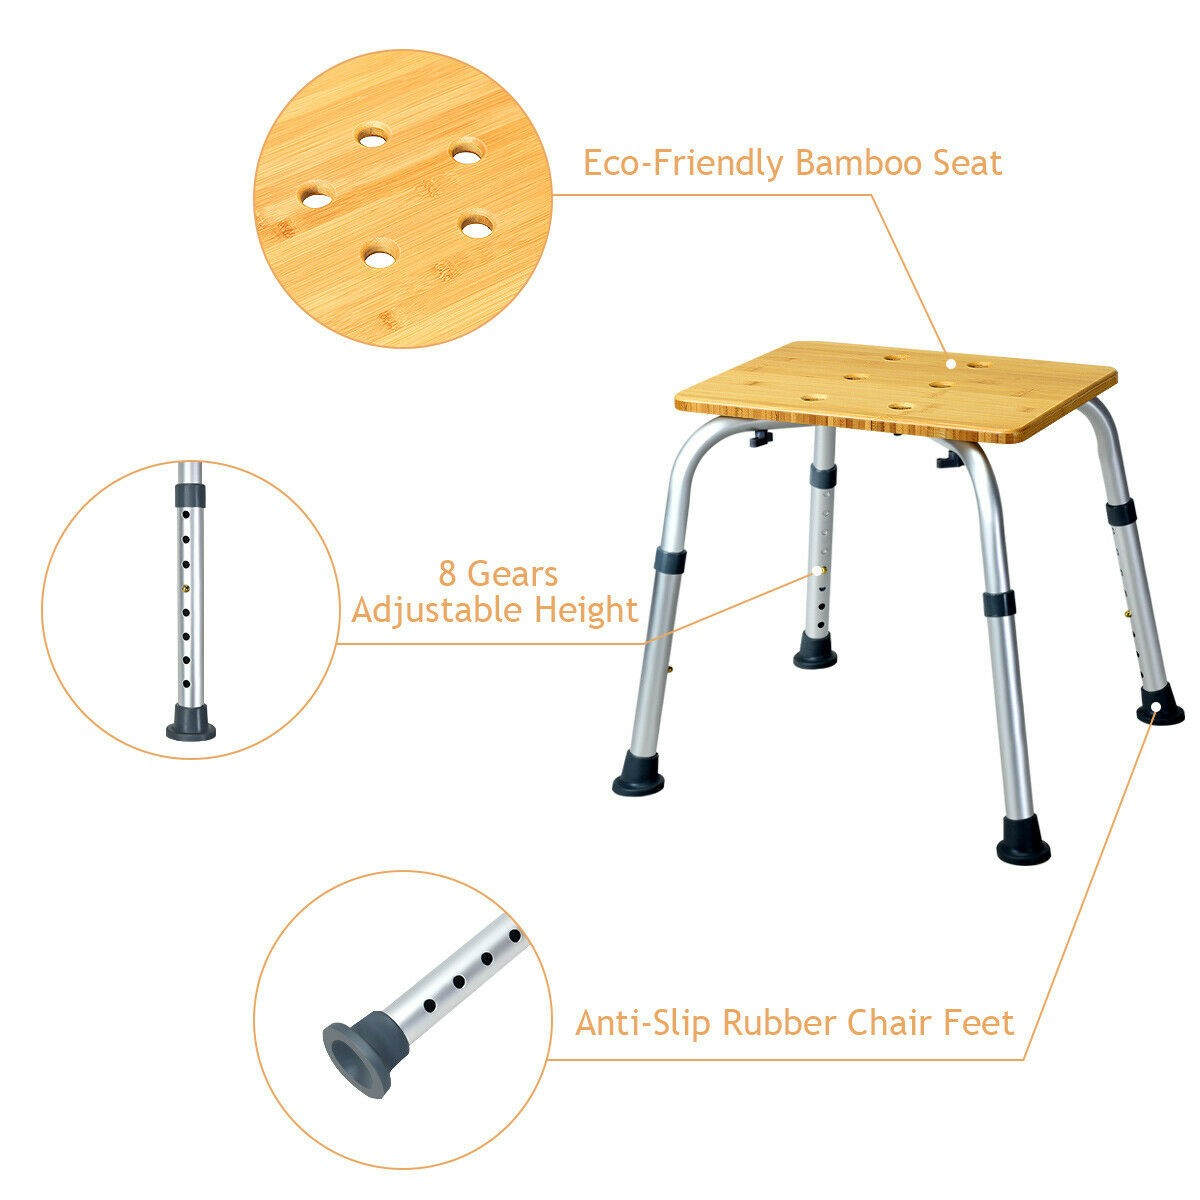 Furniture - Square Shaped Multifunctional Bamboo Bath Seat Shower Chair Adjustable Non Slip Rubber Feet Rust-proof Aluminum Frame Chair